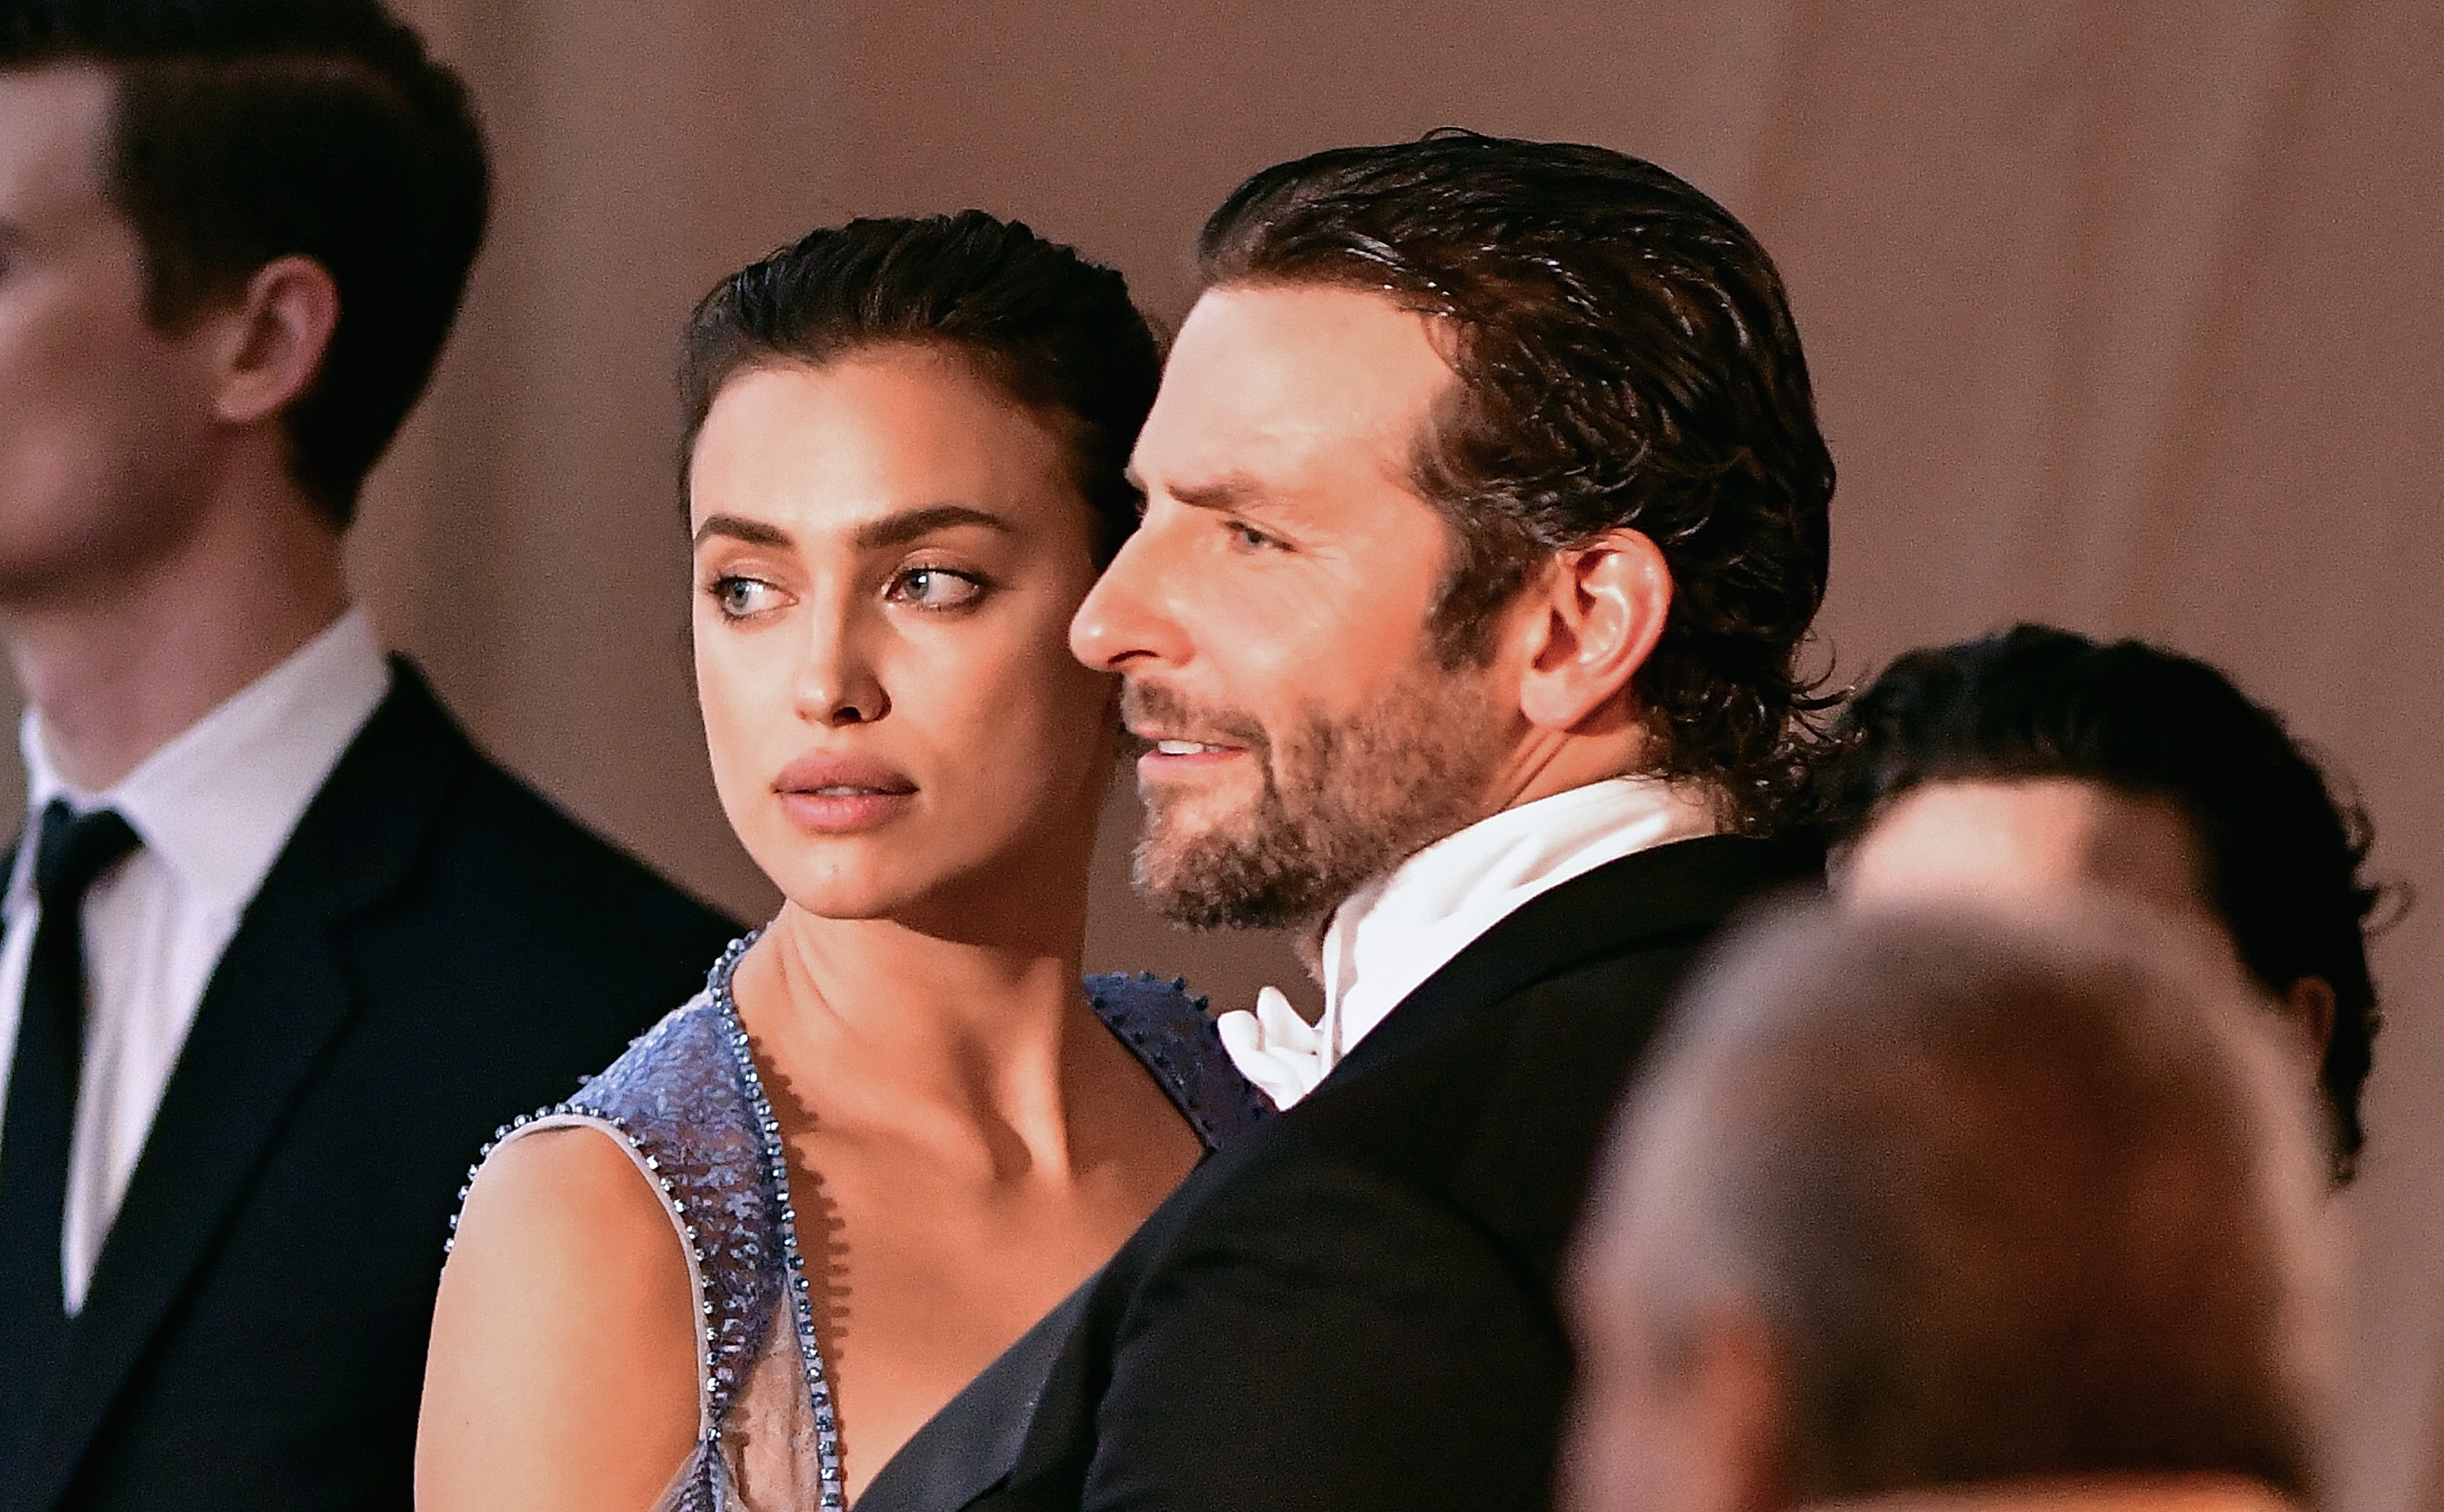 You probably won't be able to guess what Bradley Cooper and Irina Shayk named their child